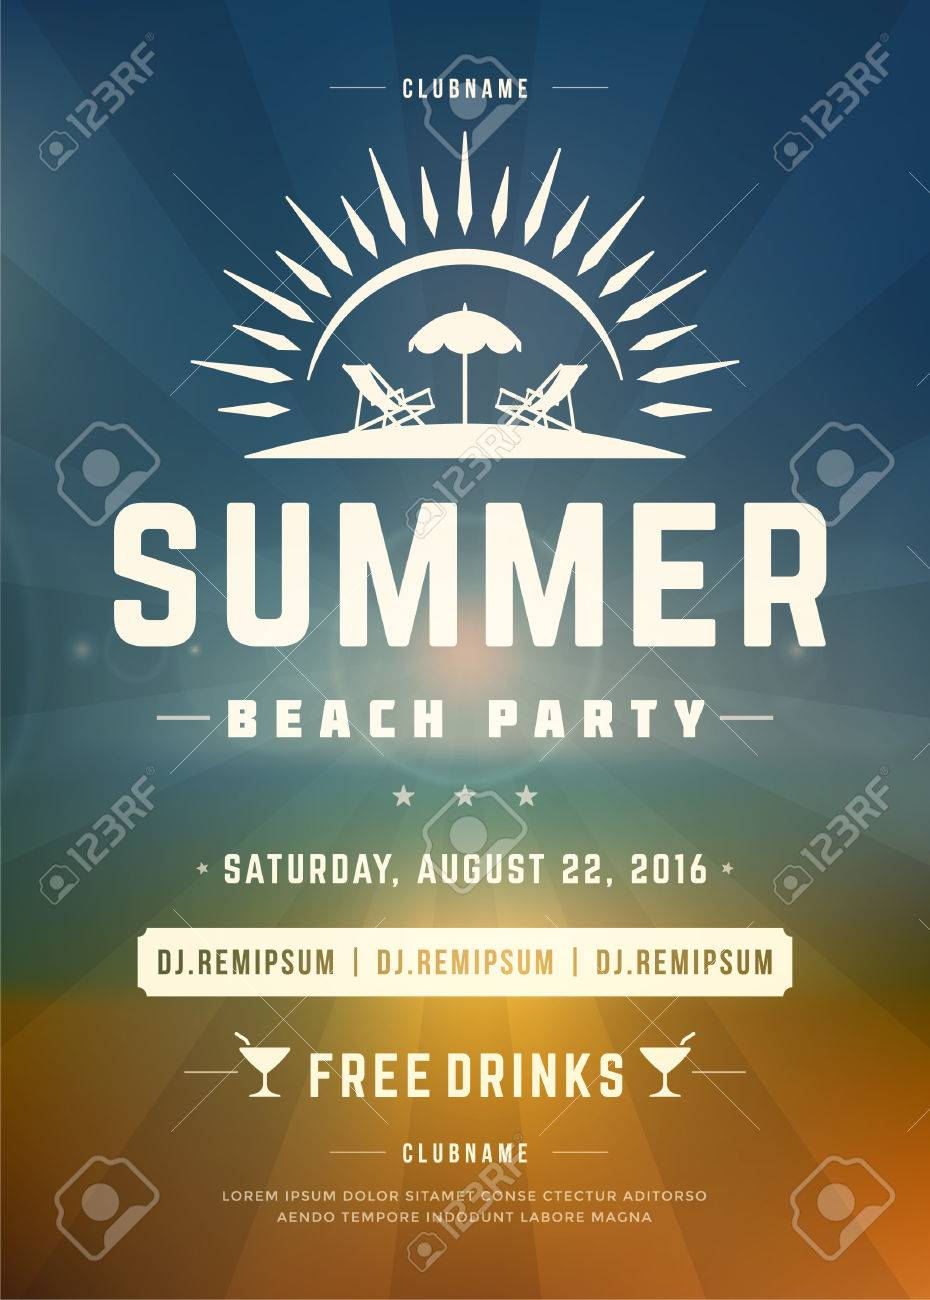 Retro Summer Holidays Beach Party Poster Or Flyer Design Template ...